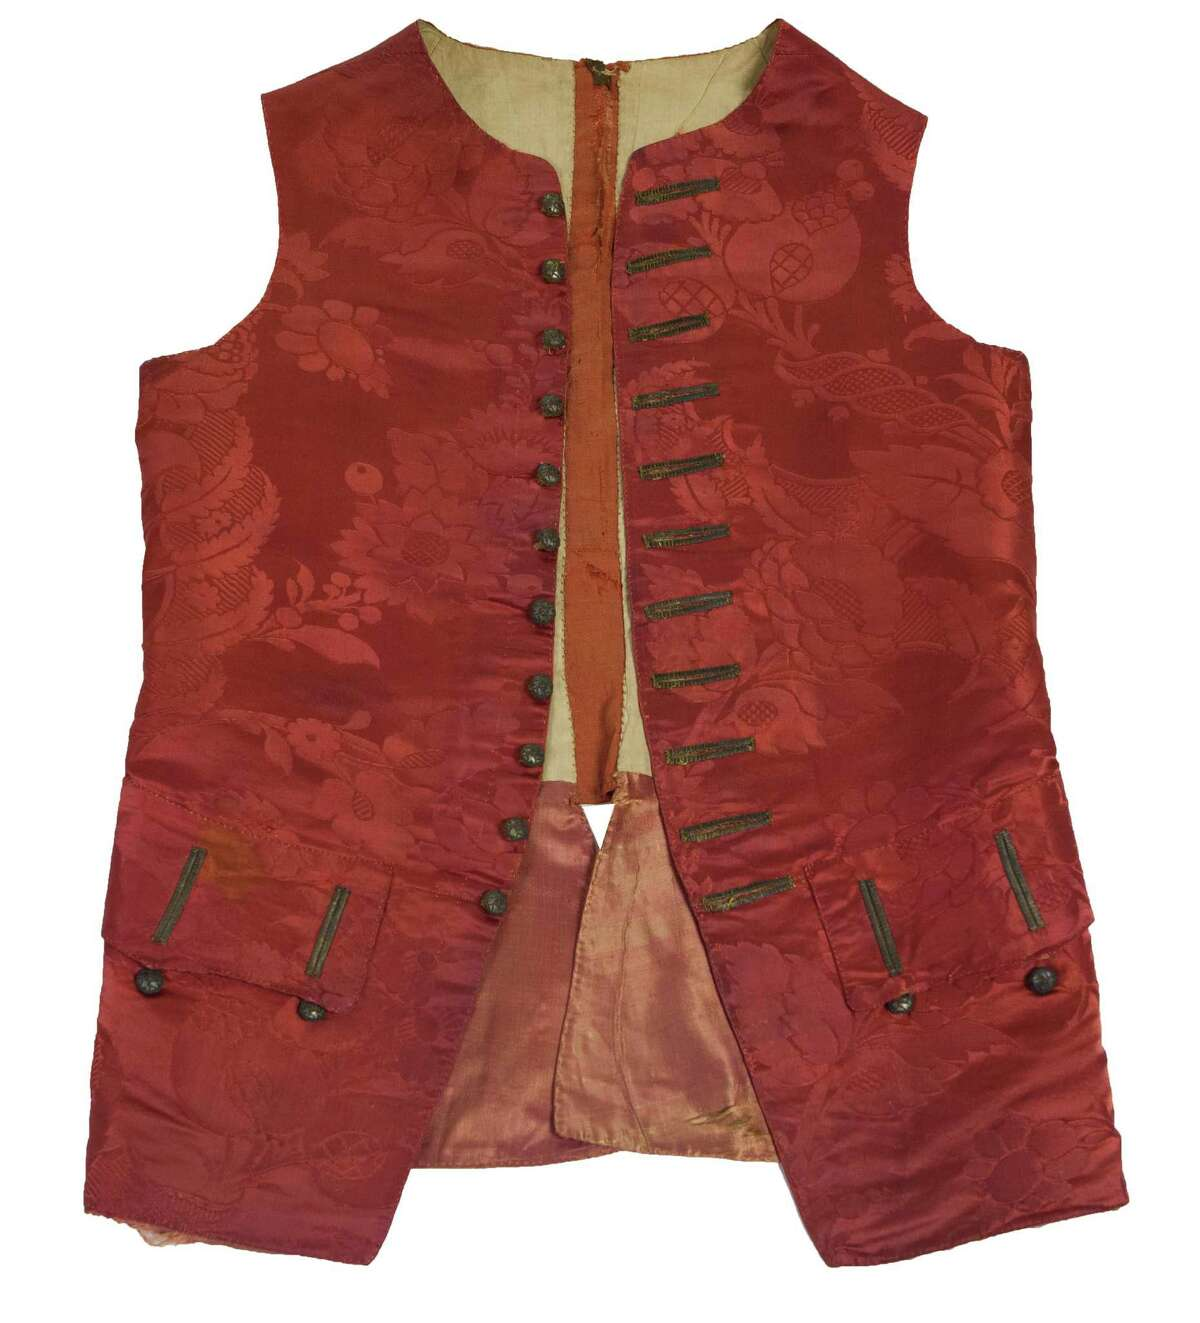 This crimson silk vest belonged to an E. Mott of Wilton and is part of the new exhibition at Wilton Historical Society.